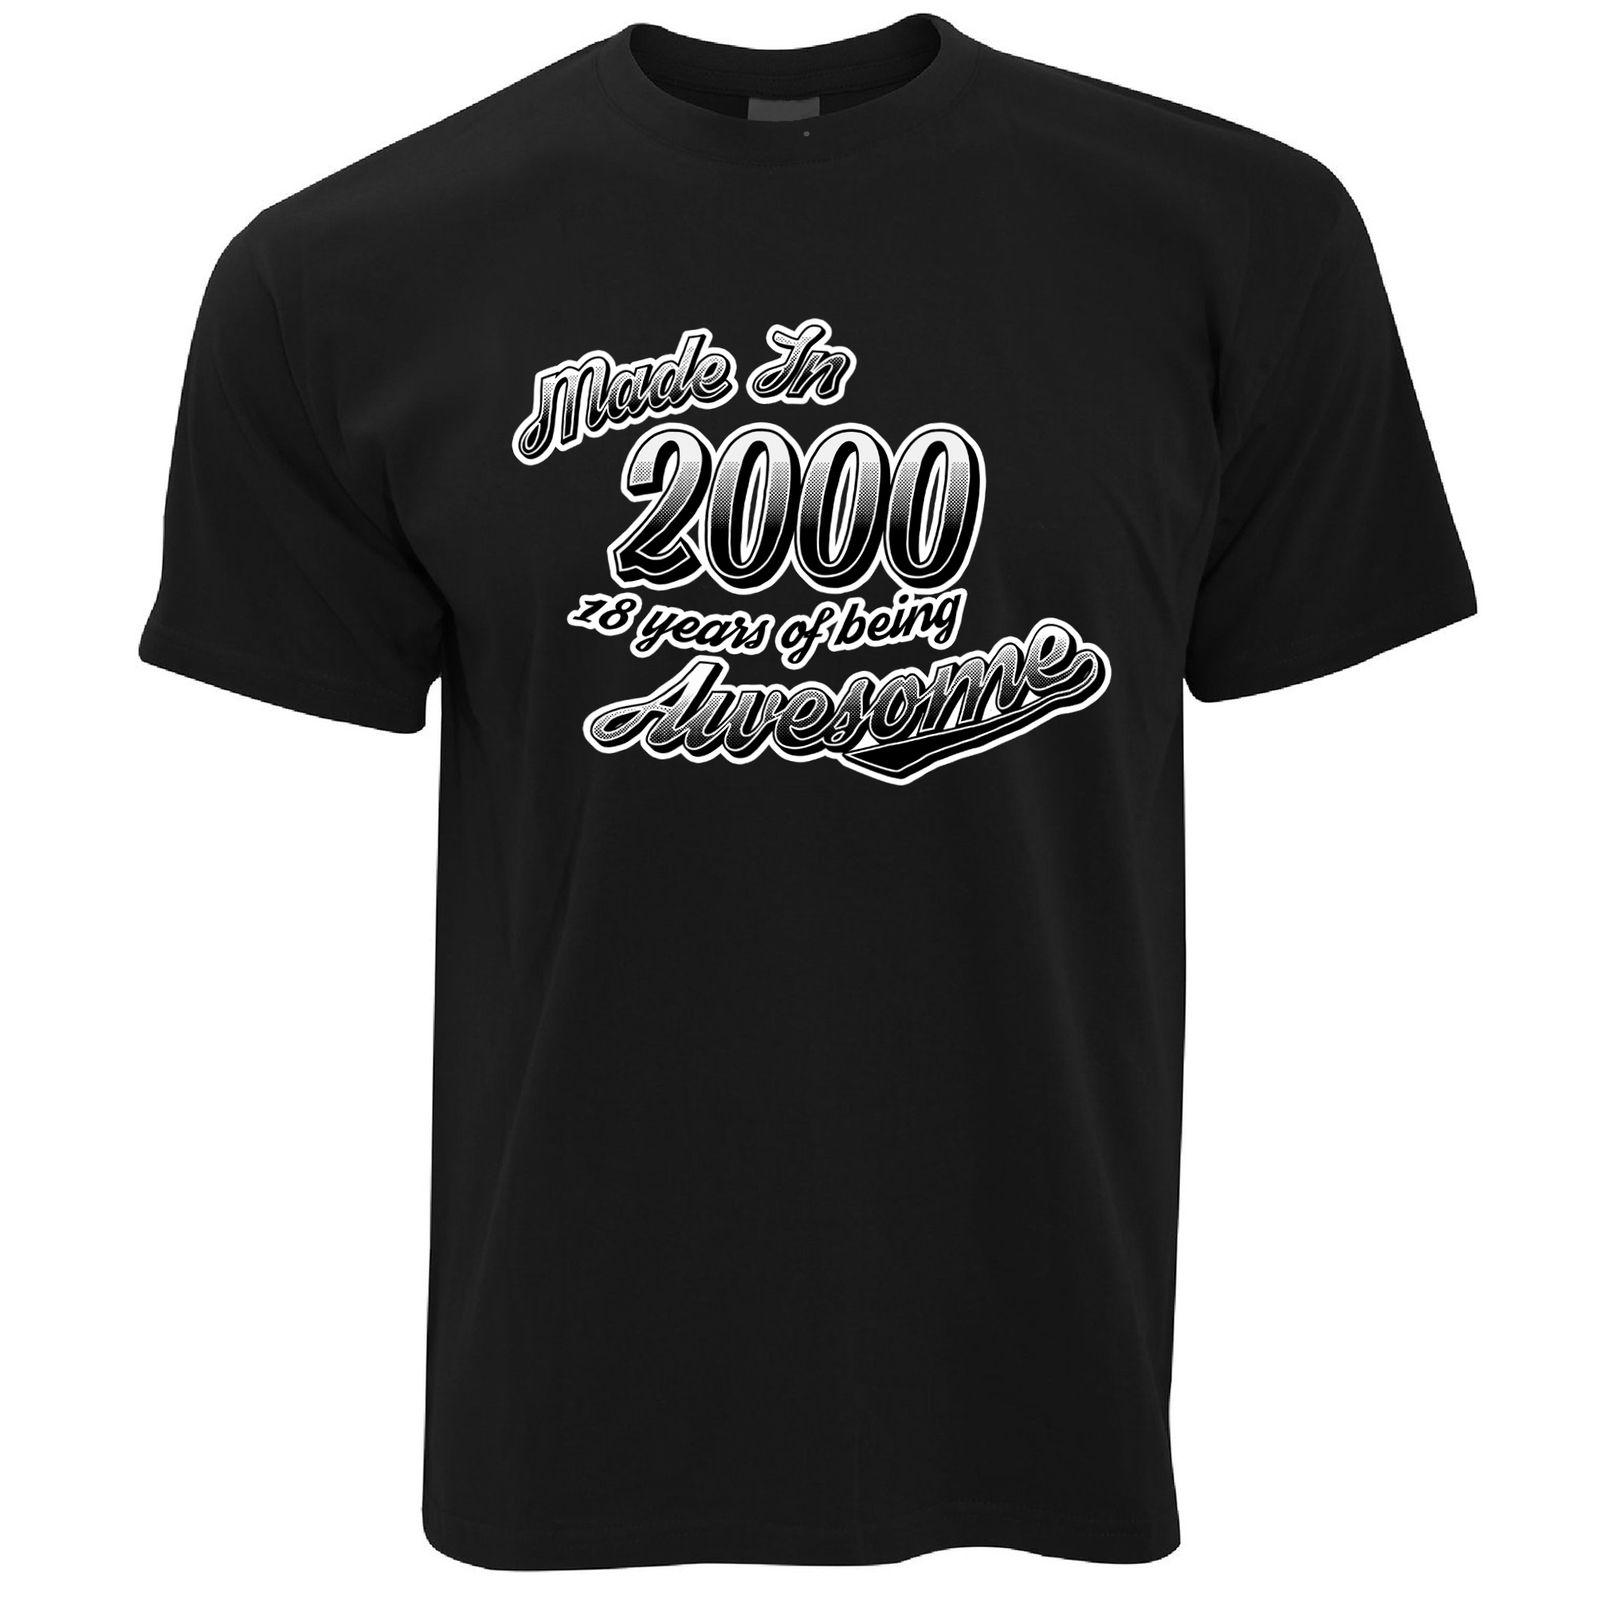 18th Birthday T Shirt Made In 2000 18 Years Of Awesome Retro Gift Idea Cool Casual Pride Men Unisex Fashion Shirts Free Shipping